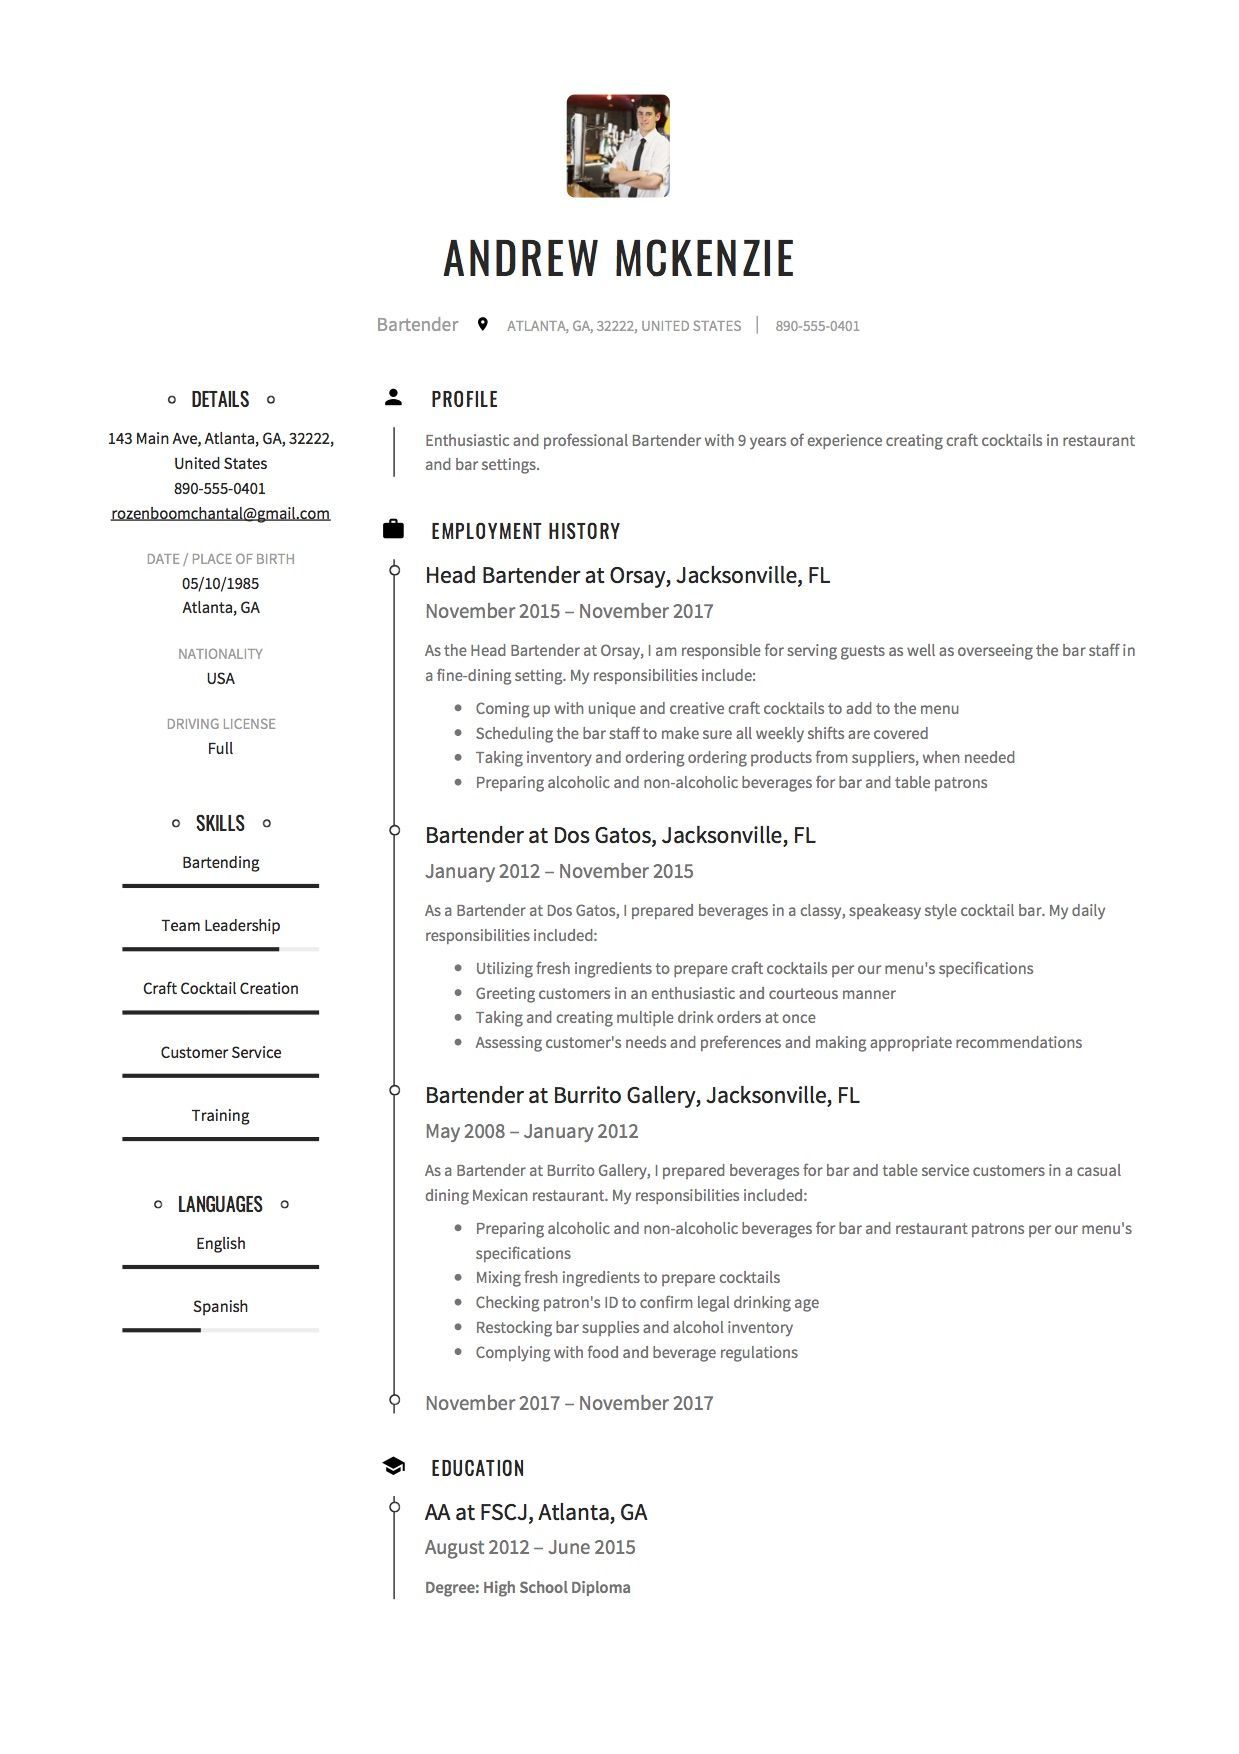 Cashier Job Description For Resume Amazing Free Bartender Resume Sample, Template, Example, Cv. | Cv Examples Review